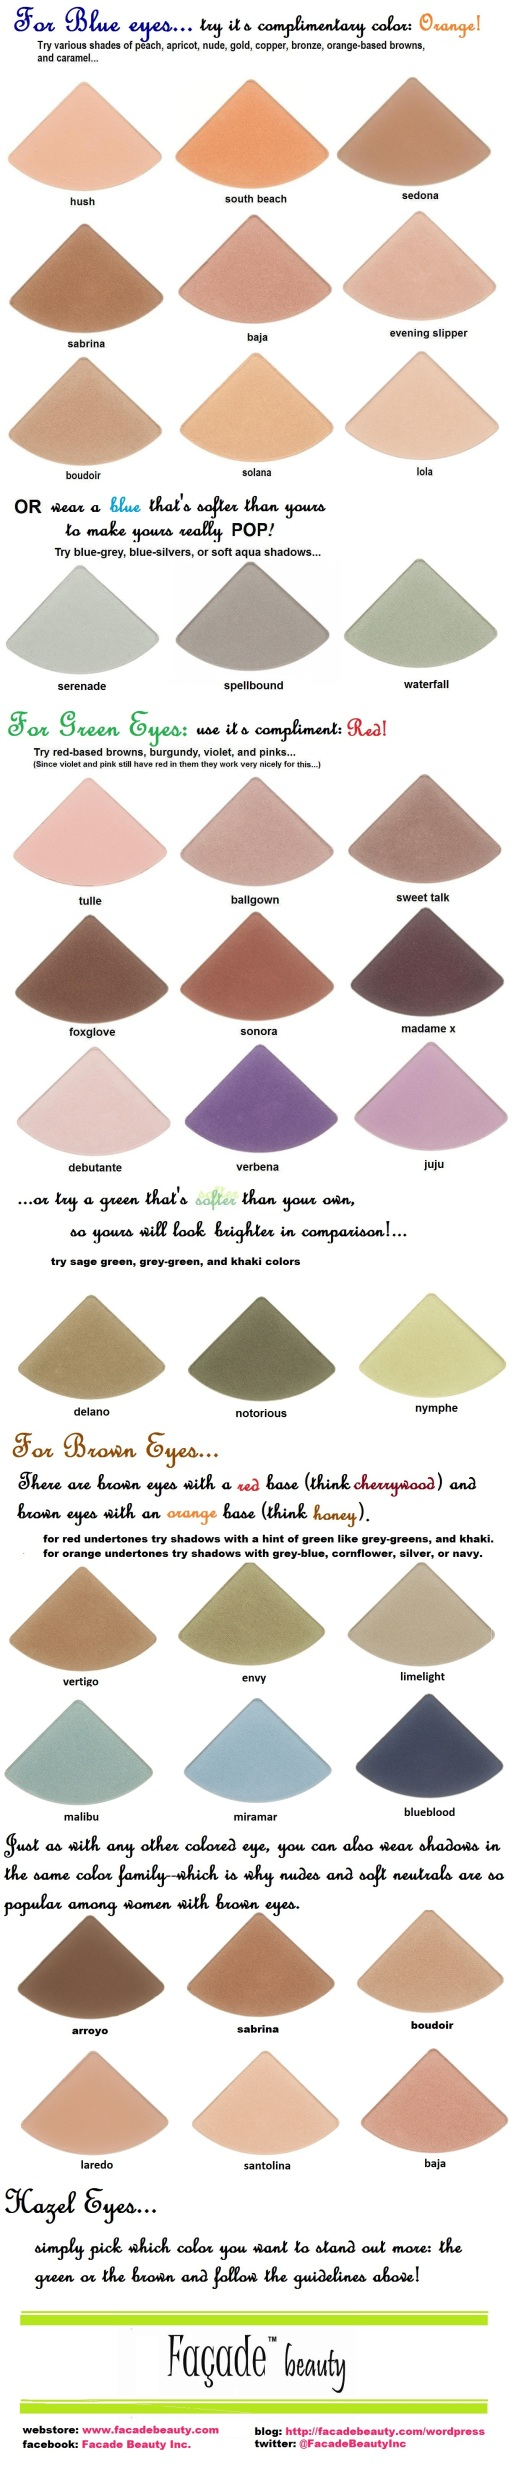 best eyeshadows for colored eyes